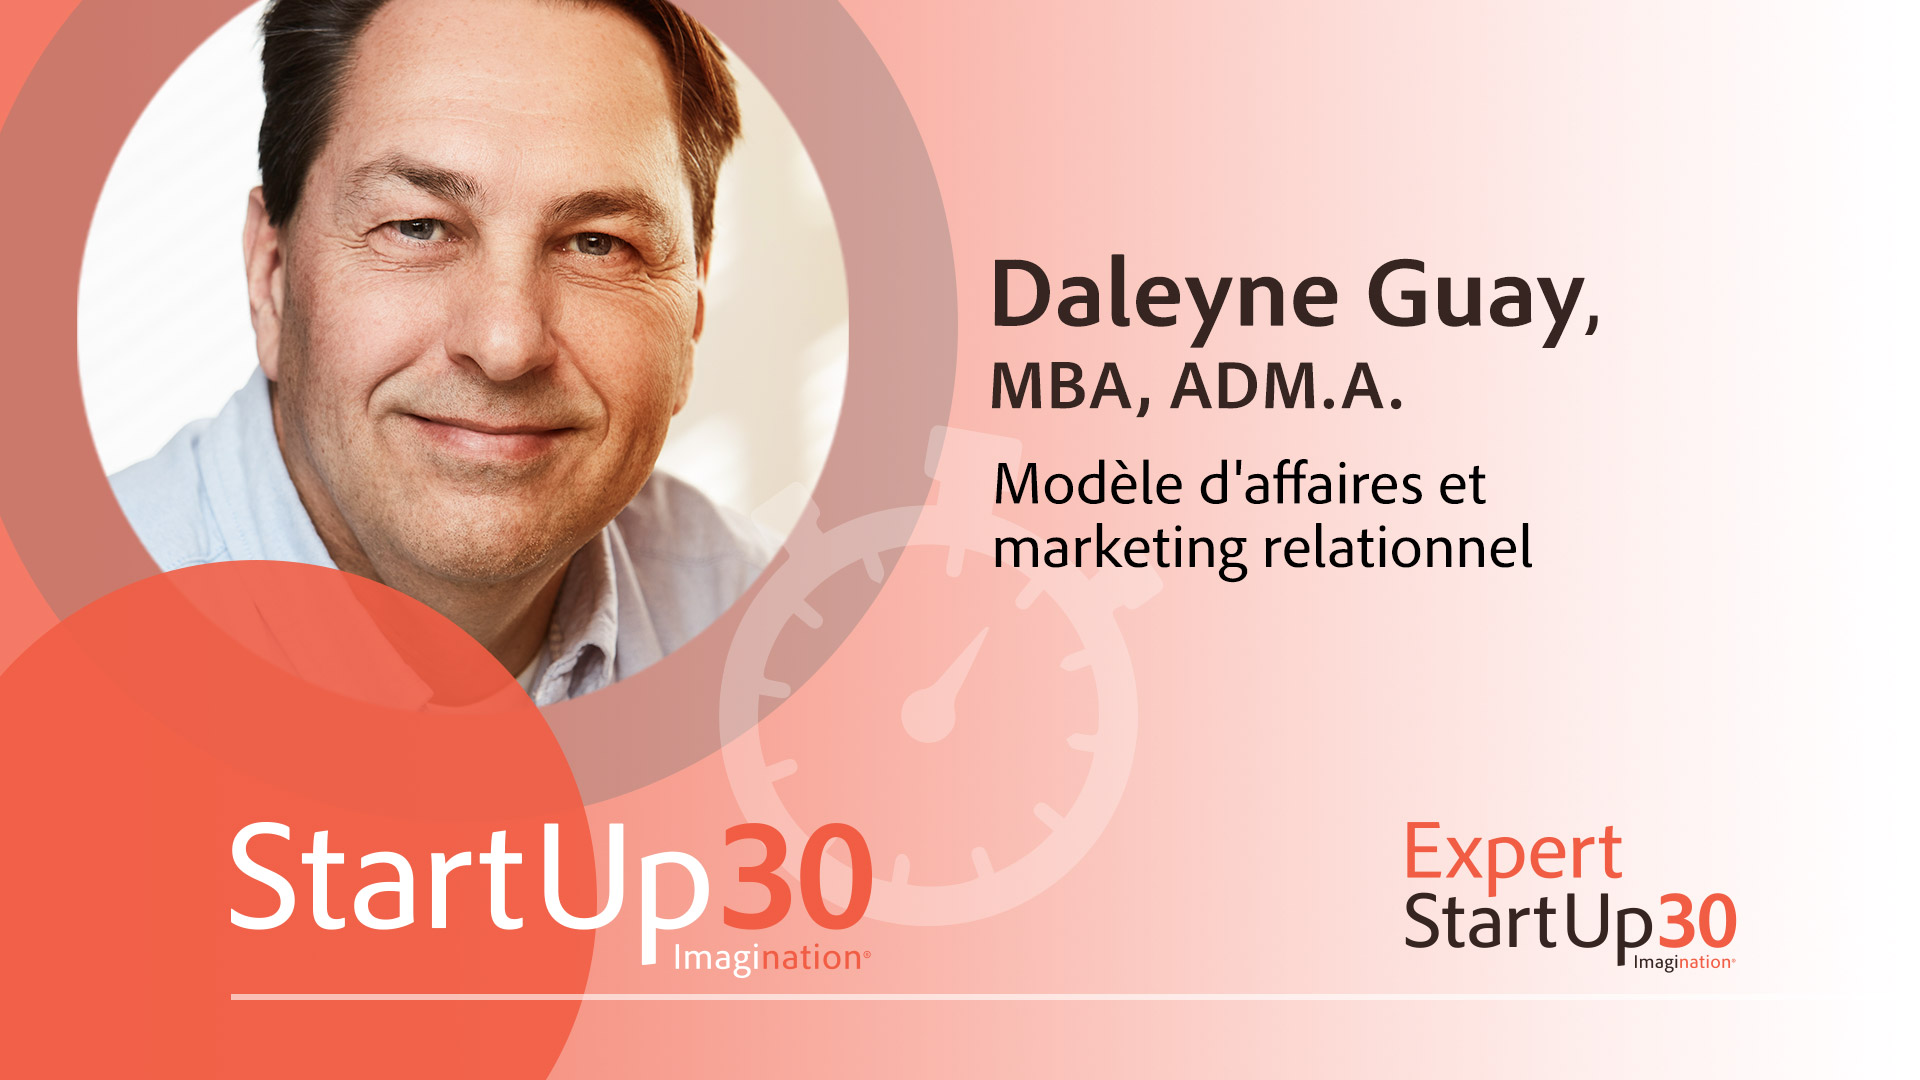 Daleyne Guay - Expert modèle d'affaires et marketing relationnel